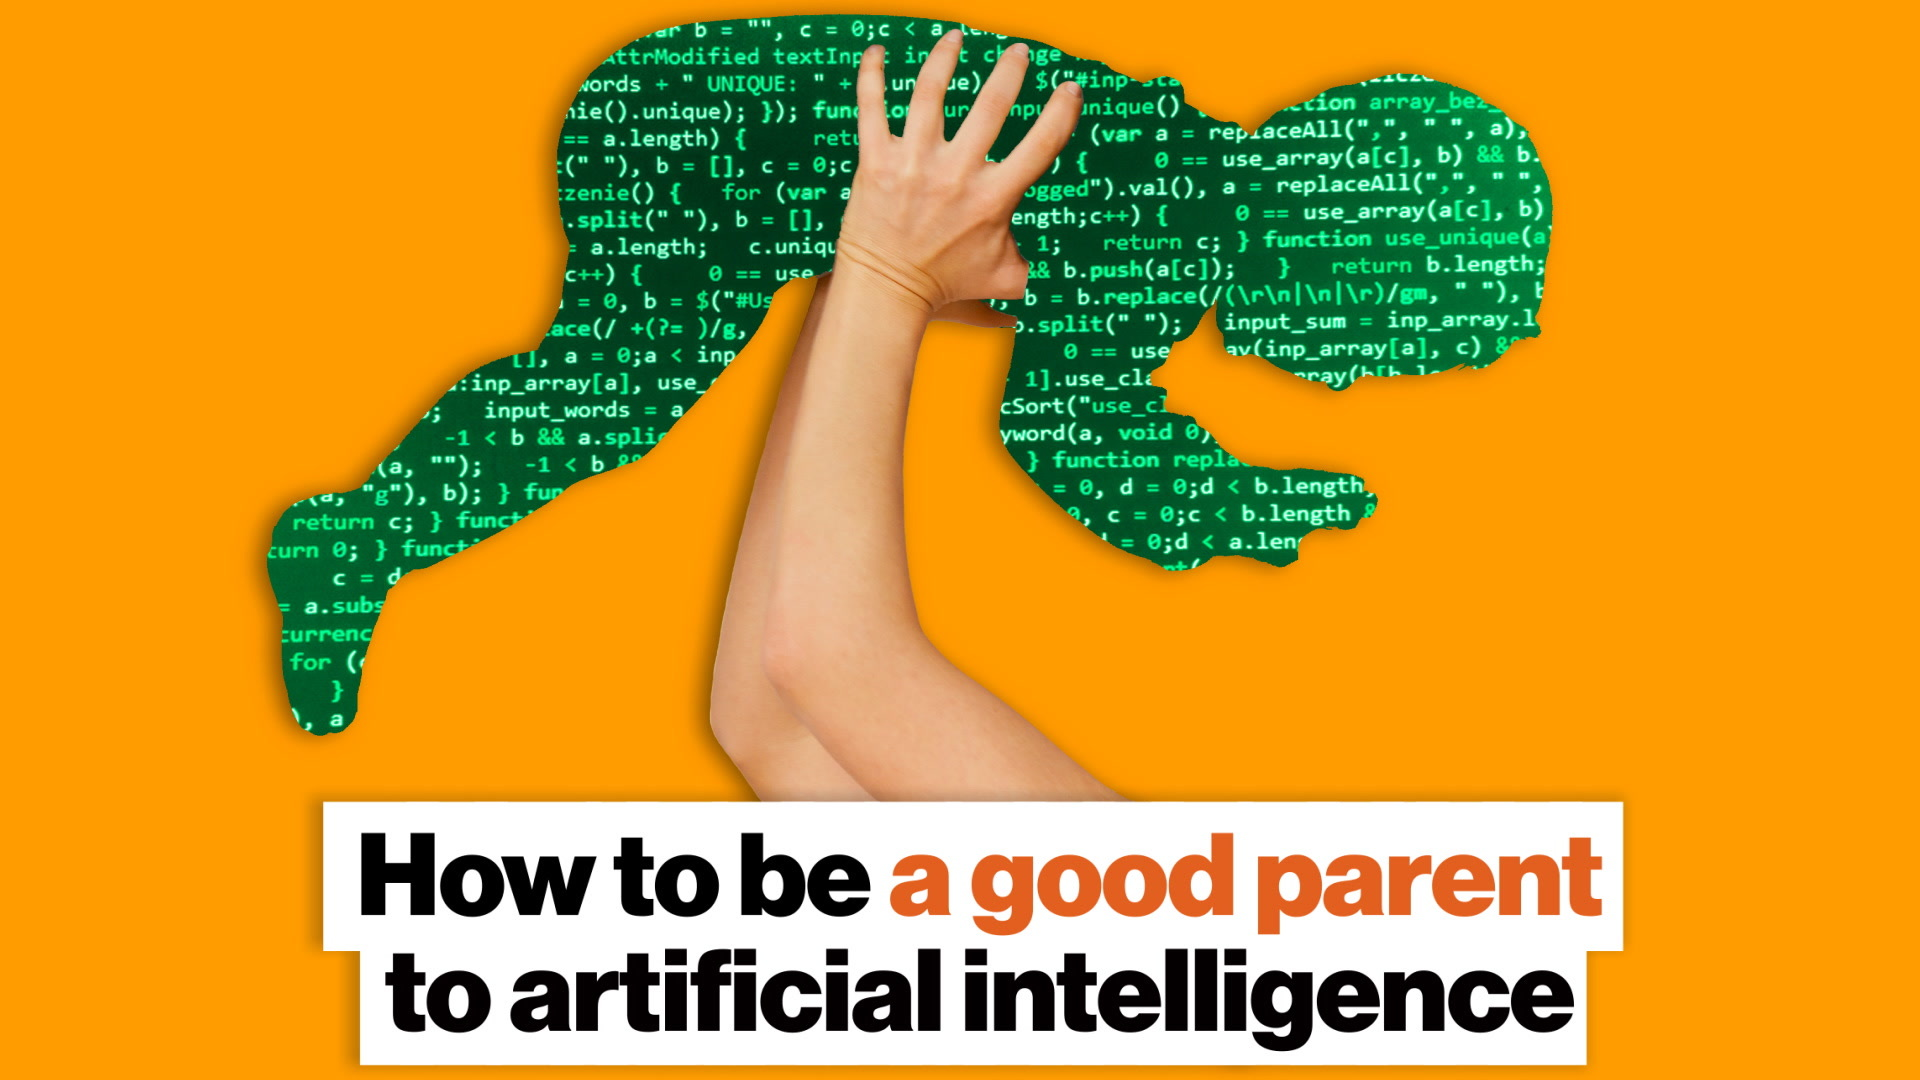 How to be a good parent to artificial intelligence